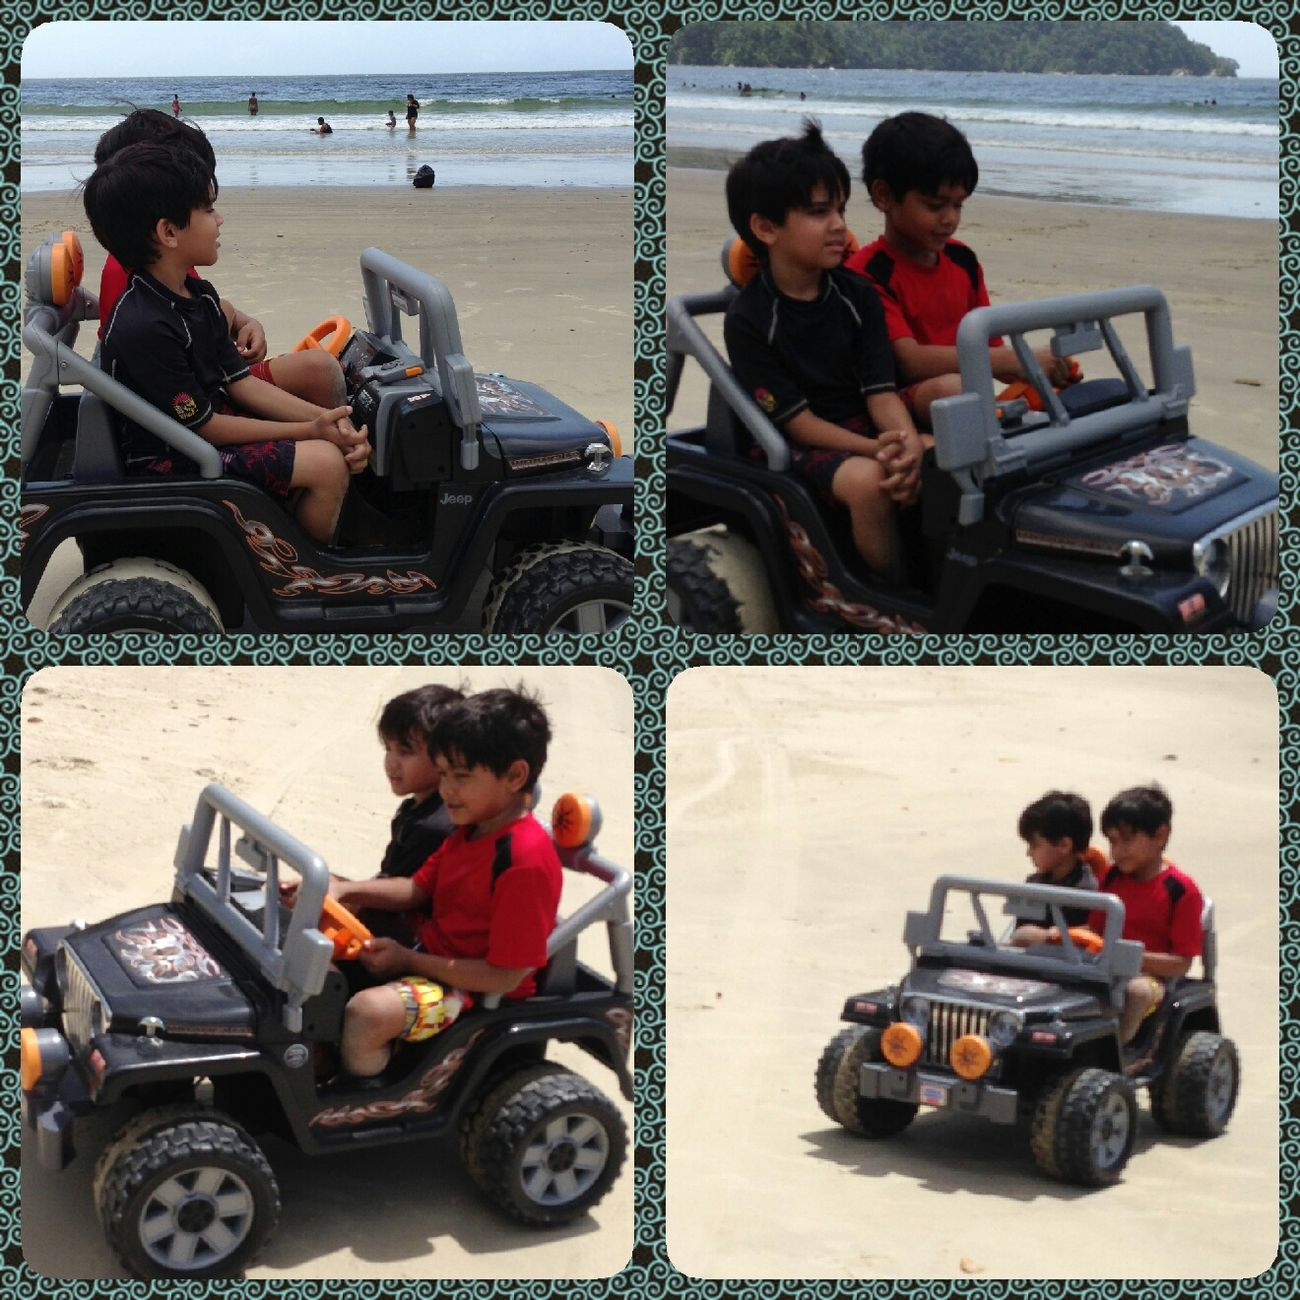 My Kids Strolling Along The Beach Fun Times